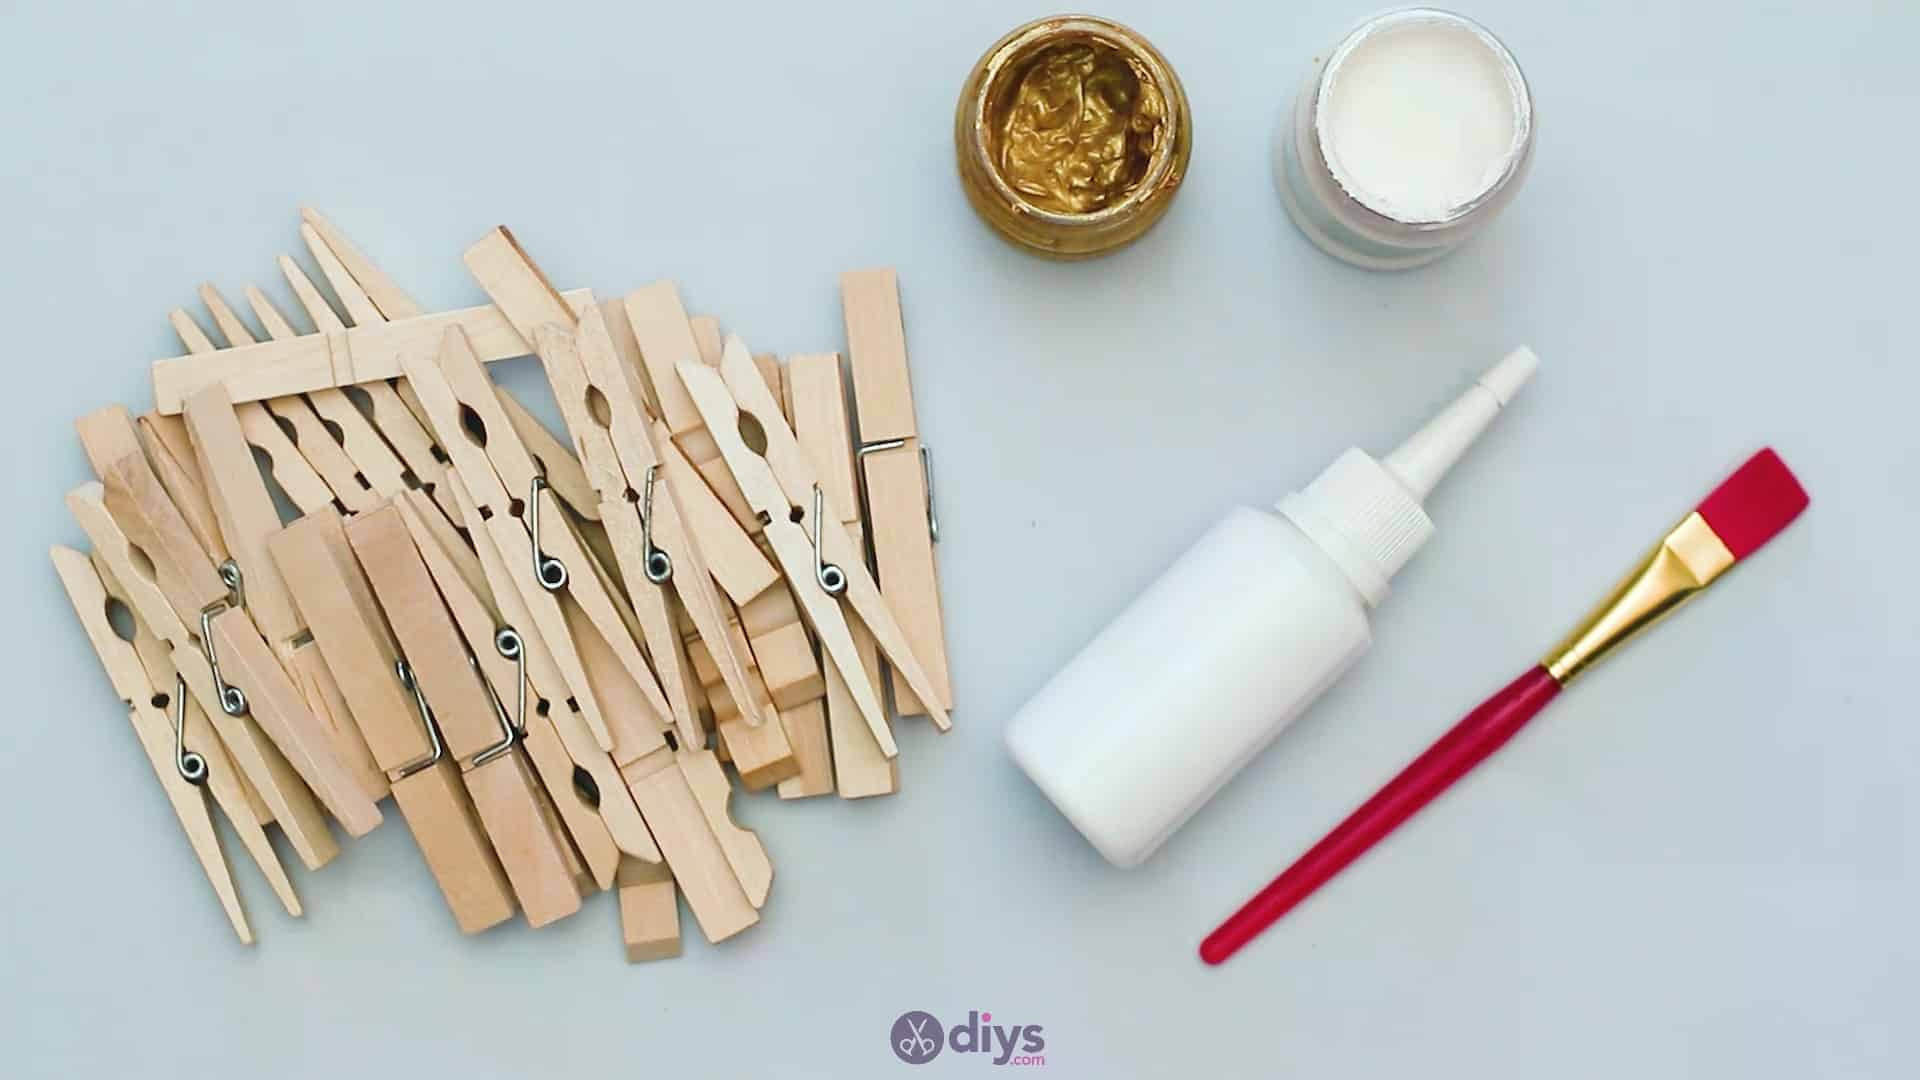 Diy clothespin art materials